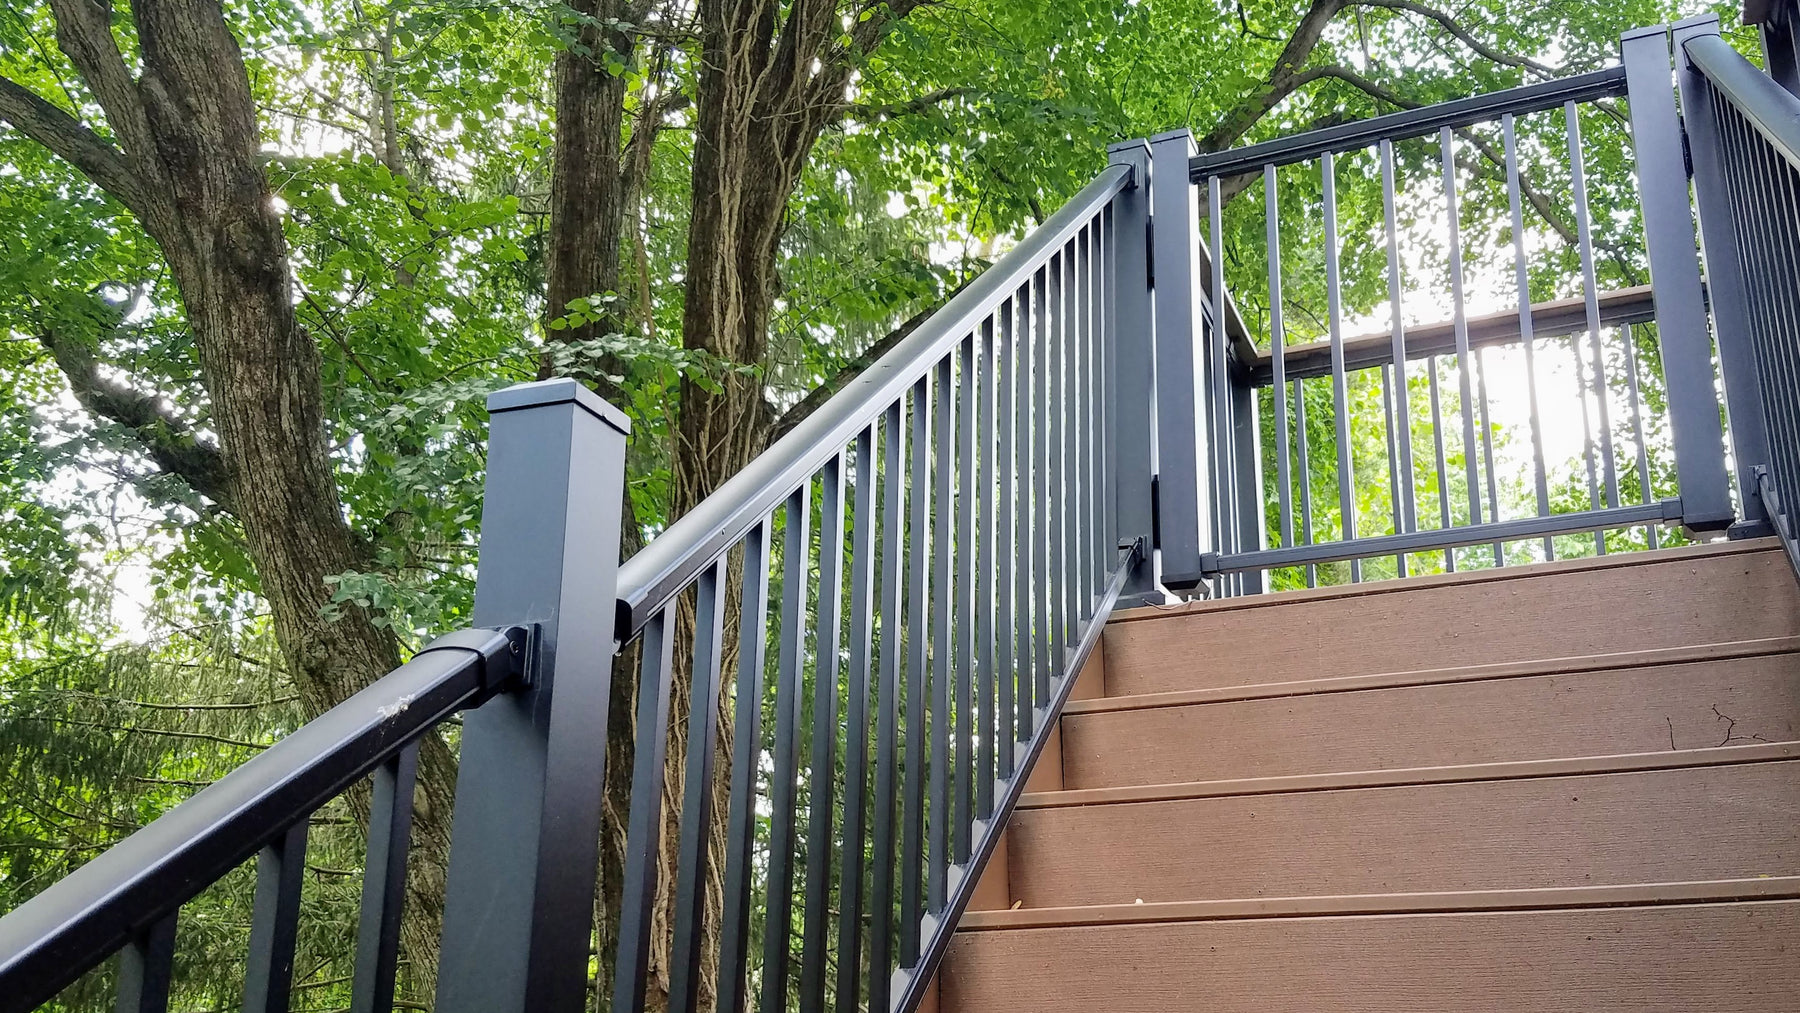 DekPro Prestige Stair Railing and Gate. Absolute Black Deck handrail or Railing, see link for more